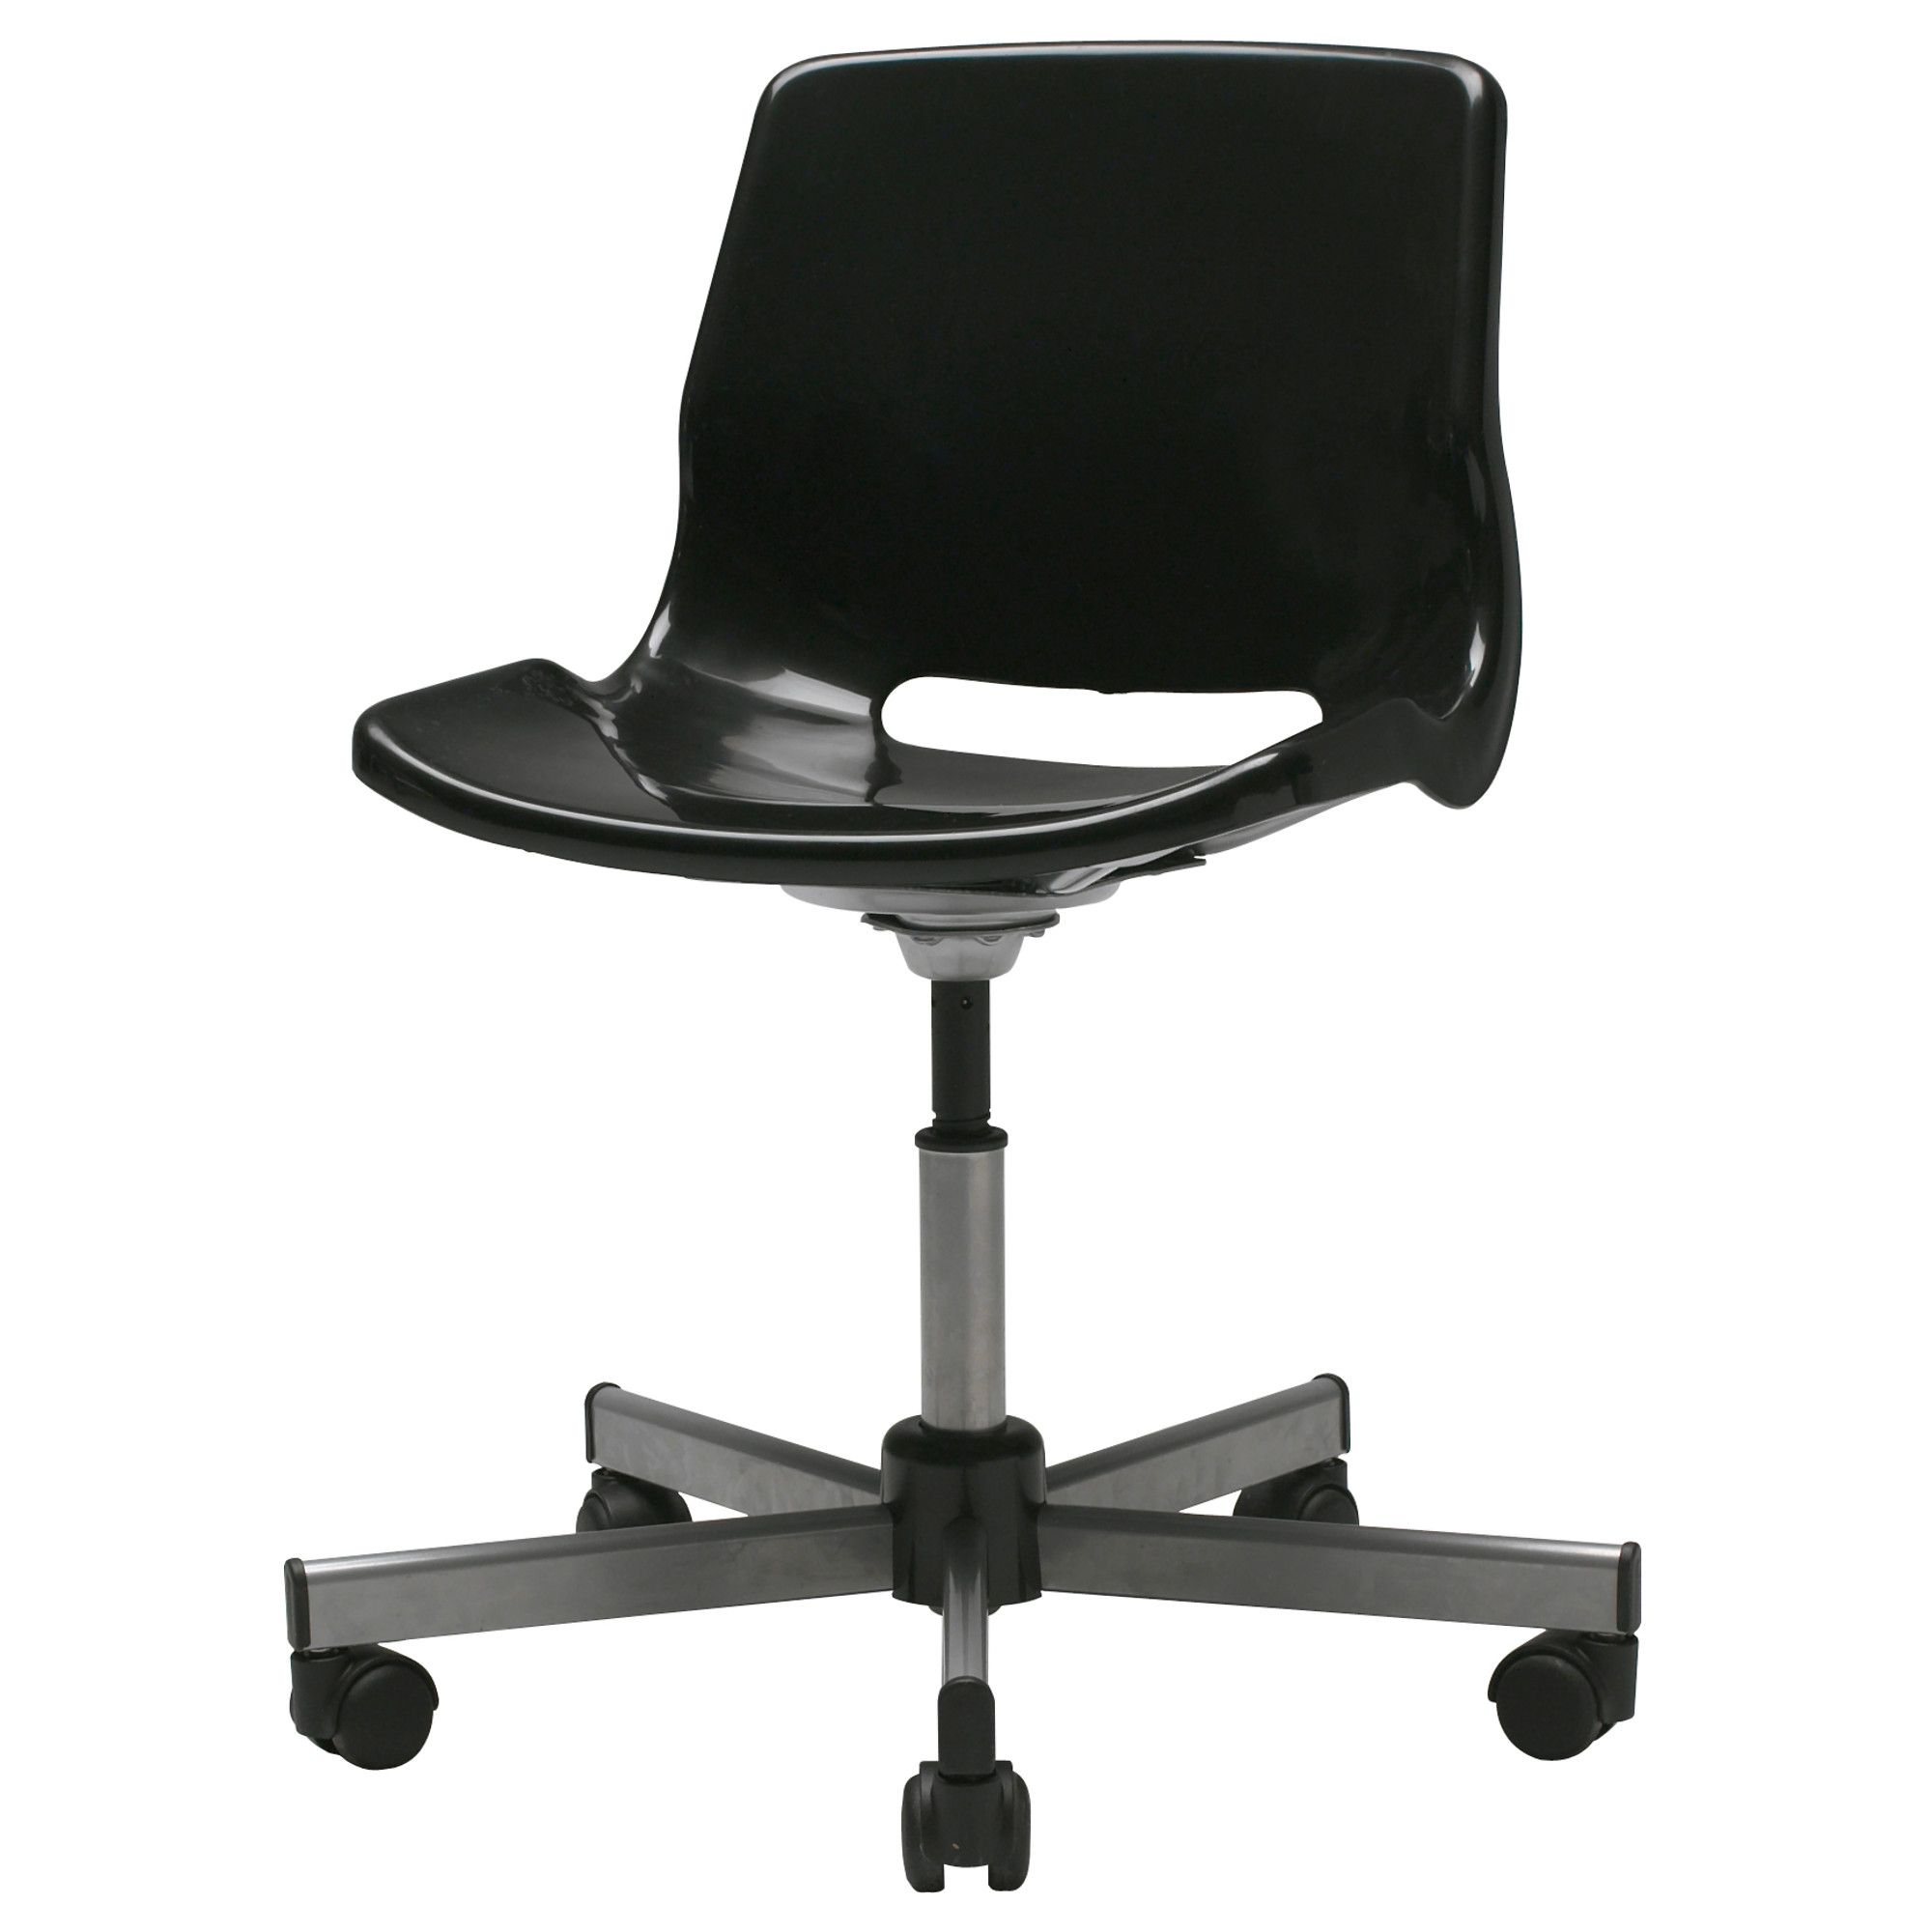 Black Desk Chair Snille Swivel Chair Black Ikea Craft Room I Want